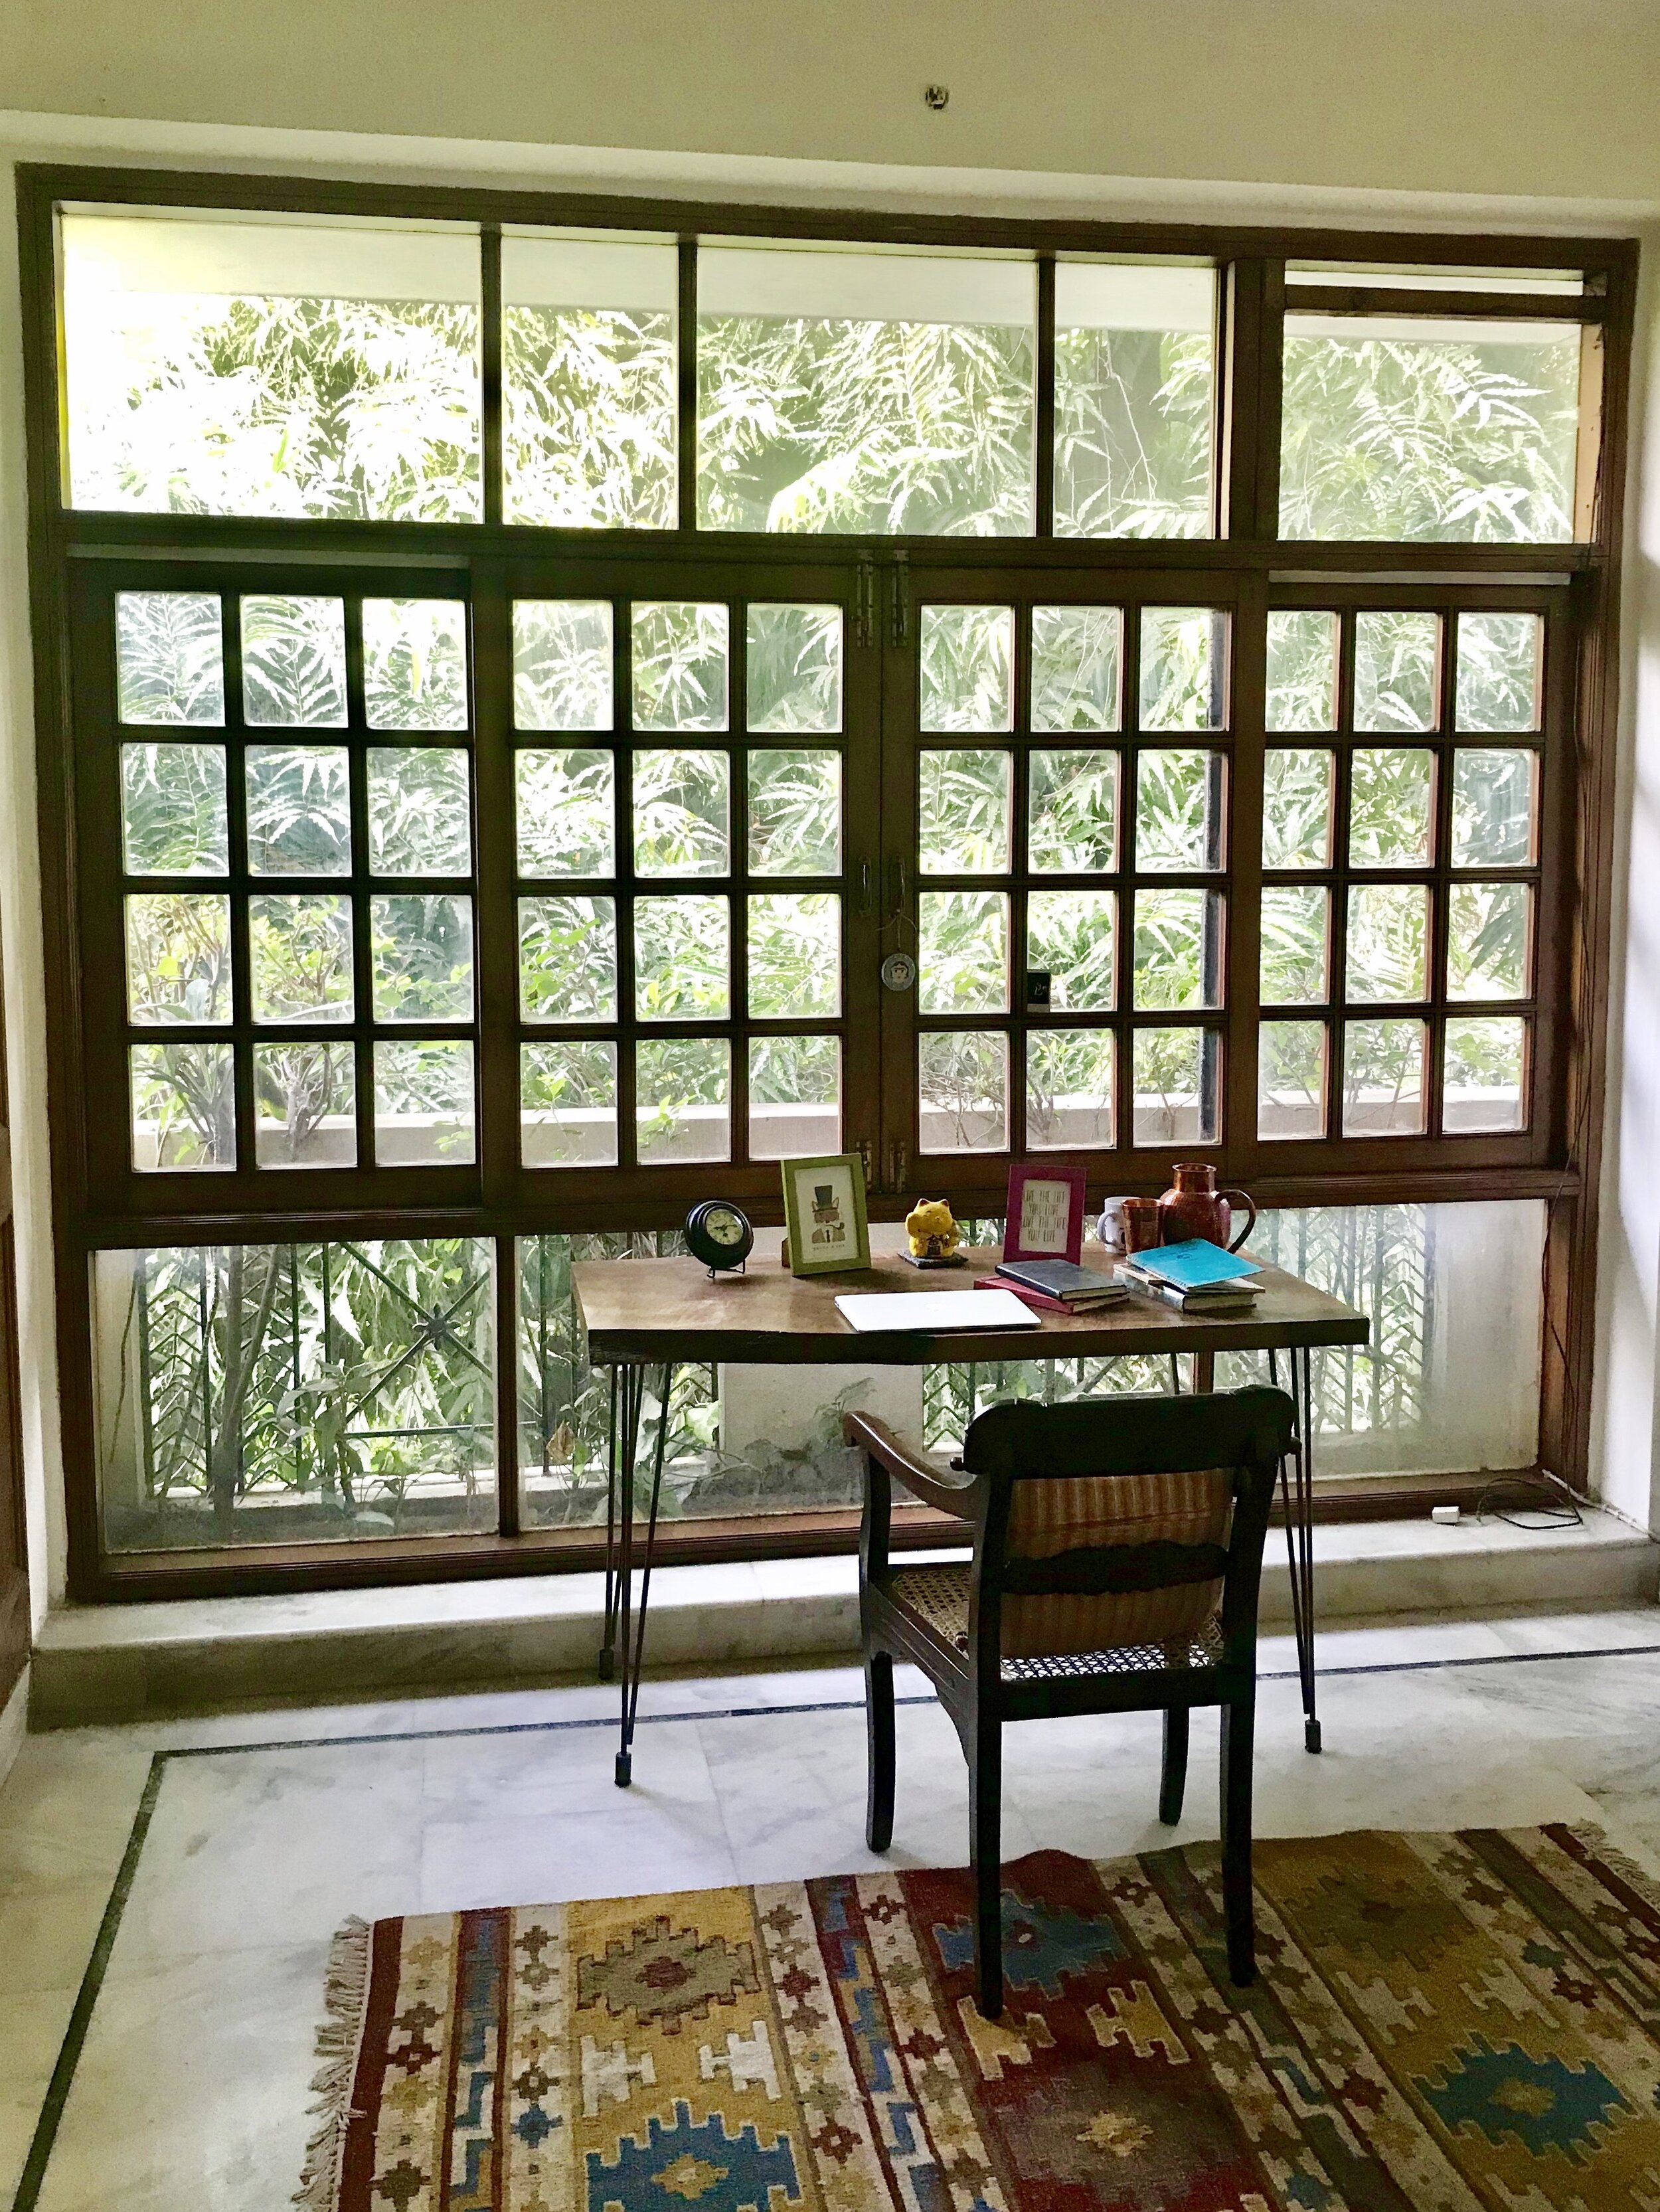 Amrita began work on Milk Teeth at this beautiful desk in New Delhi, where she took a two year break from her regular day job.